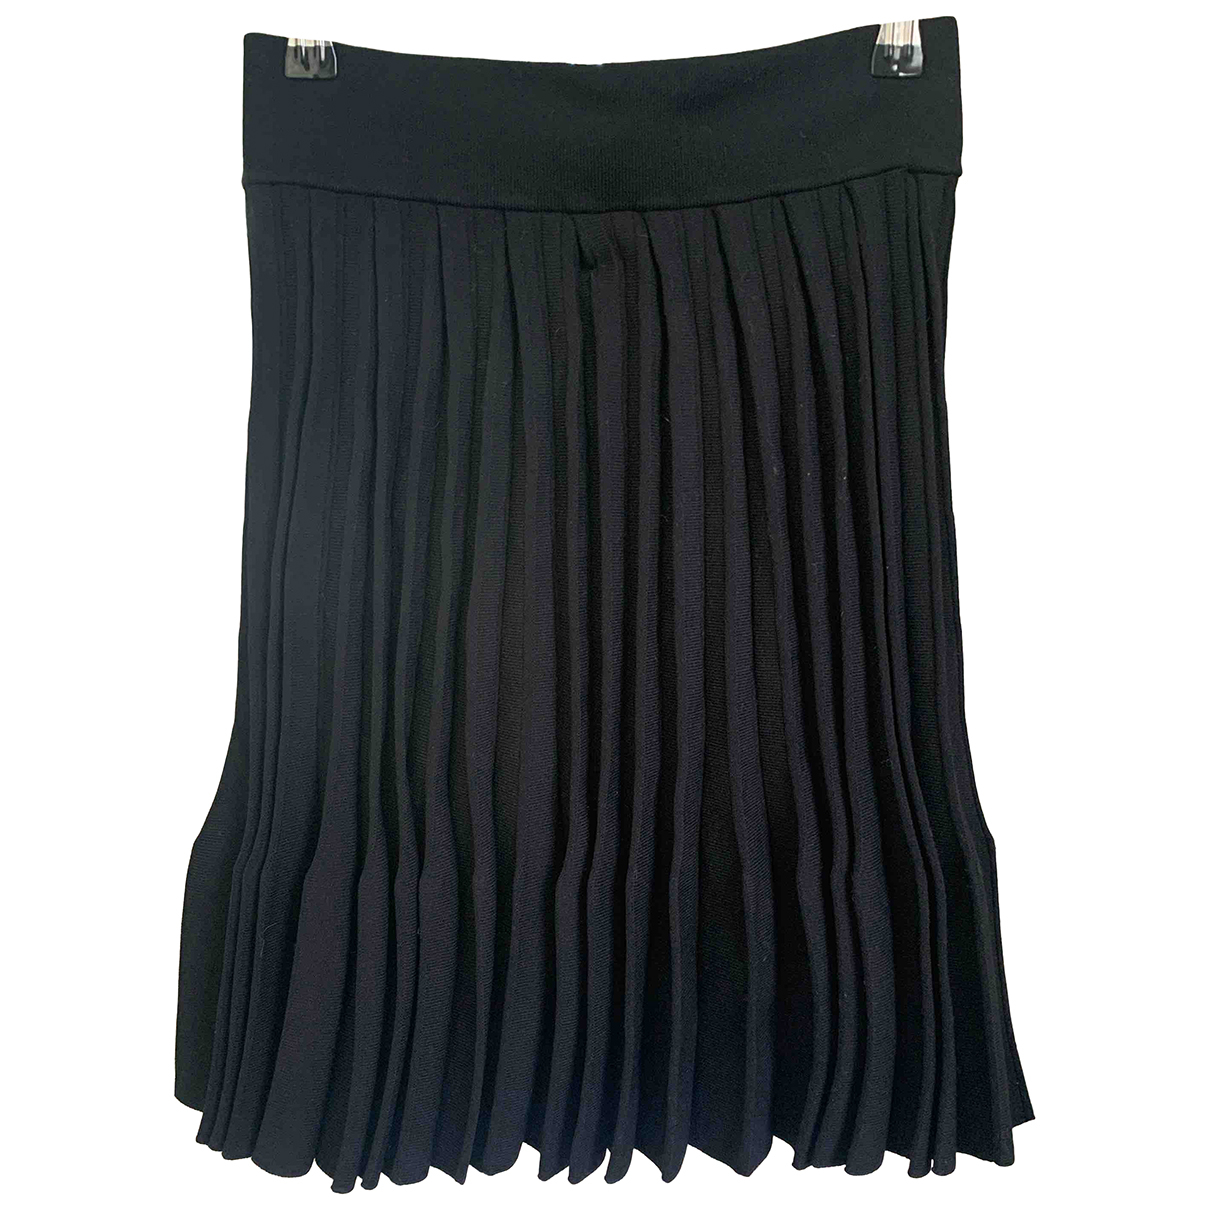 Maje N Black skirt for Women 1 0-5